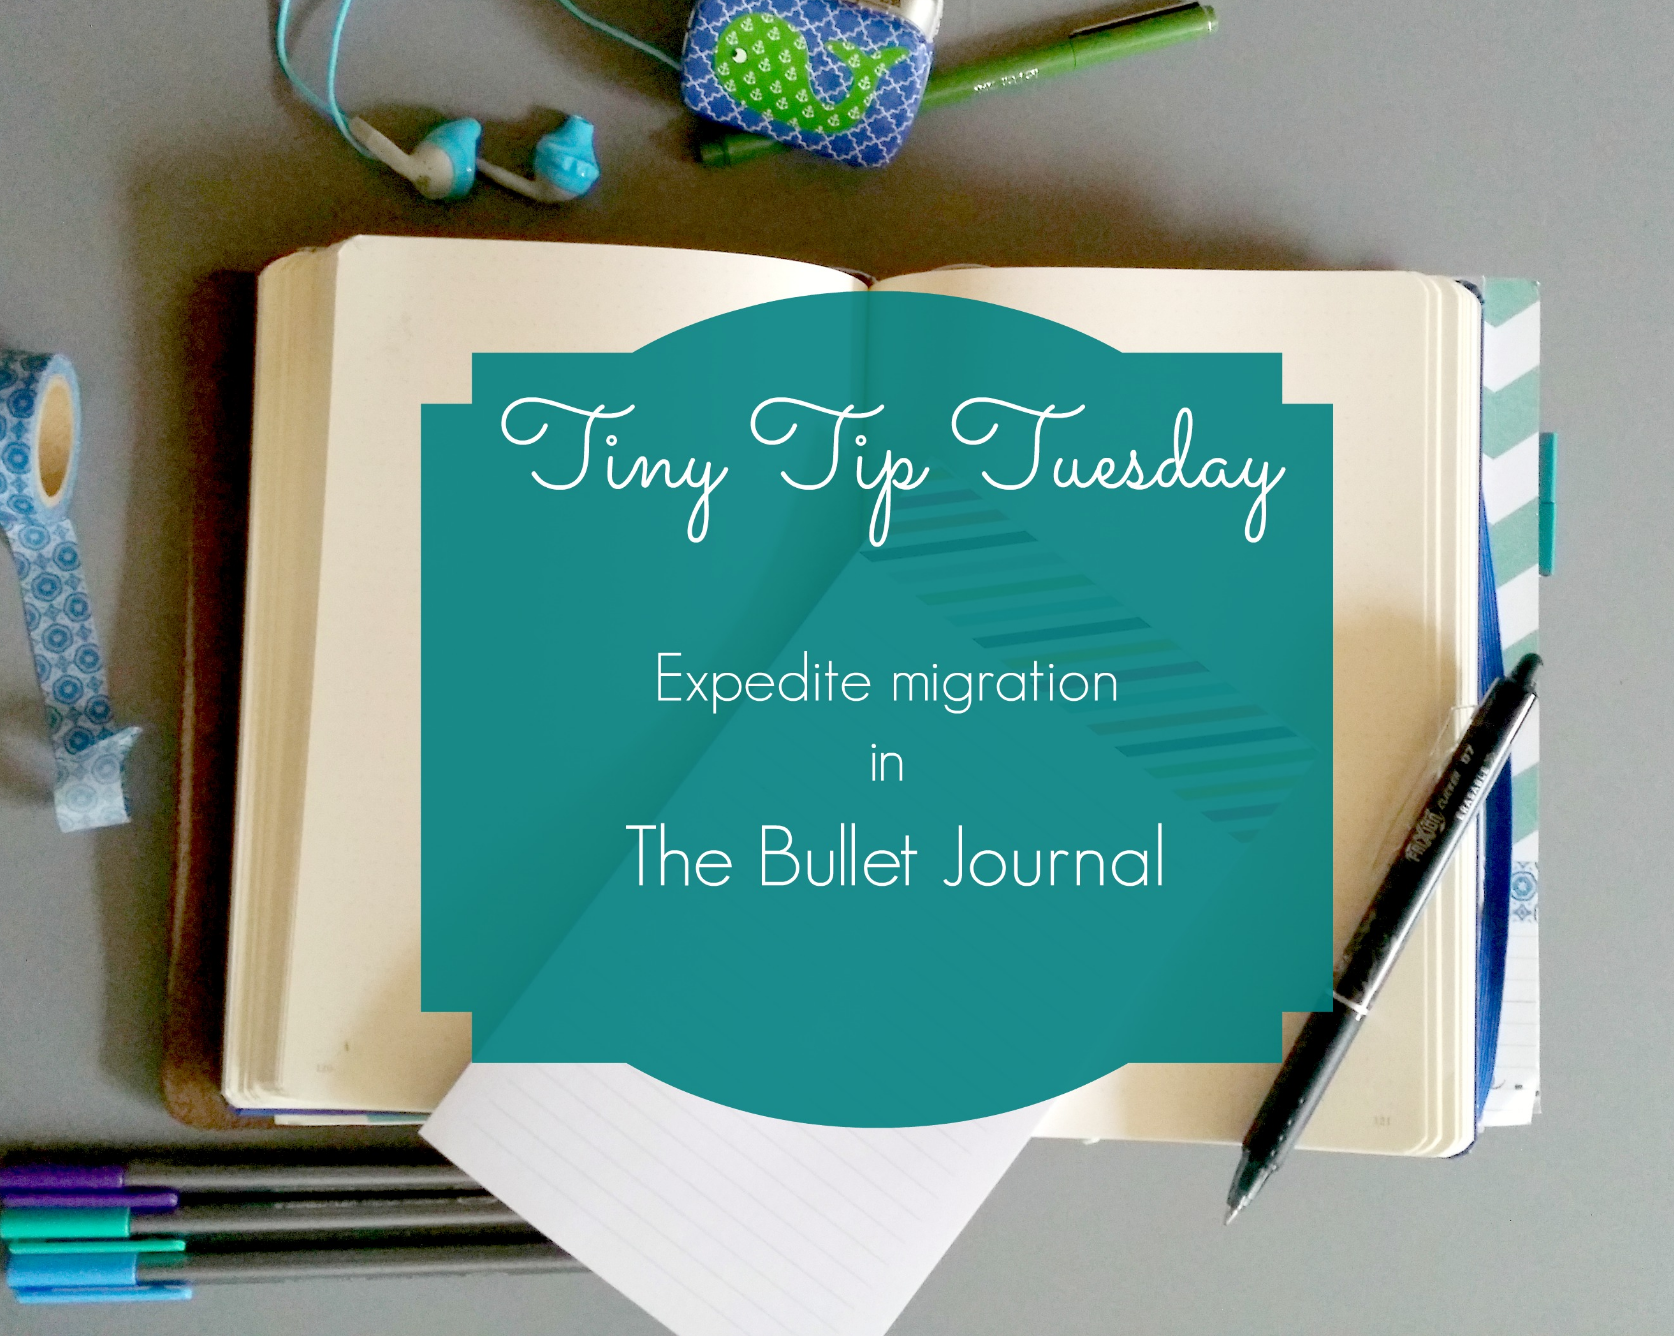 e xpedite migration in the bullet journal